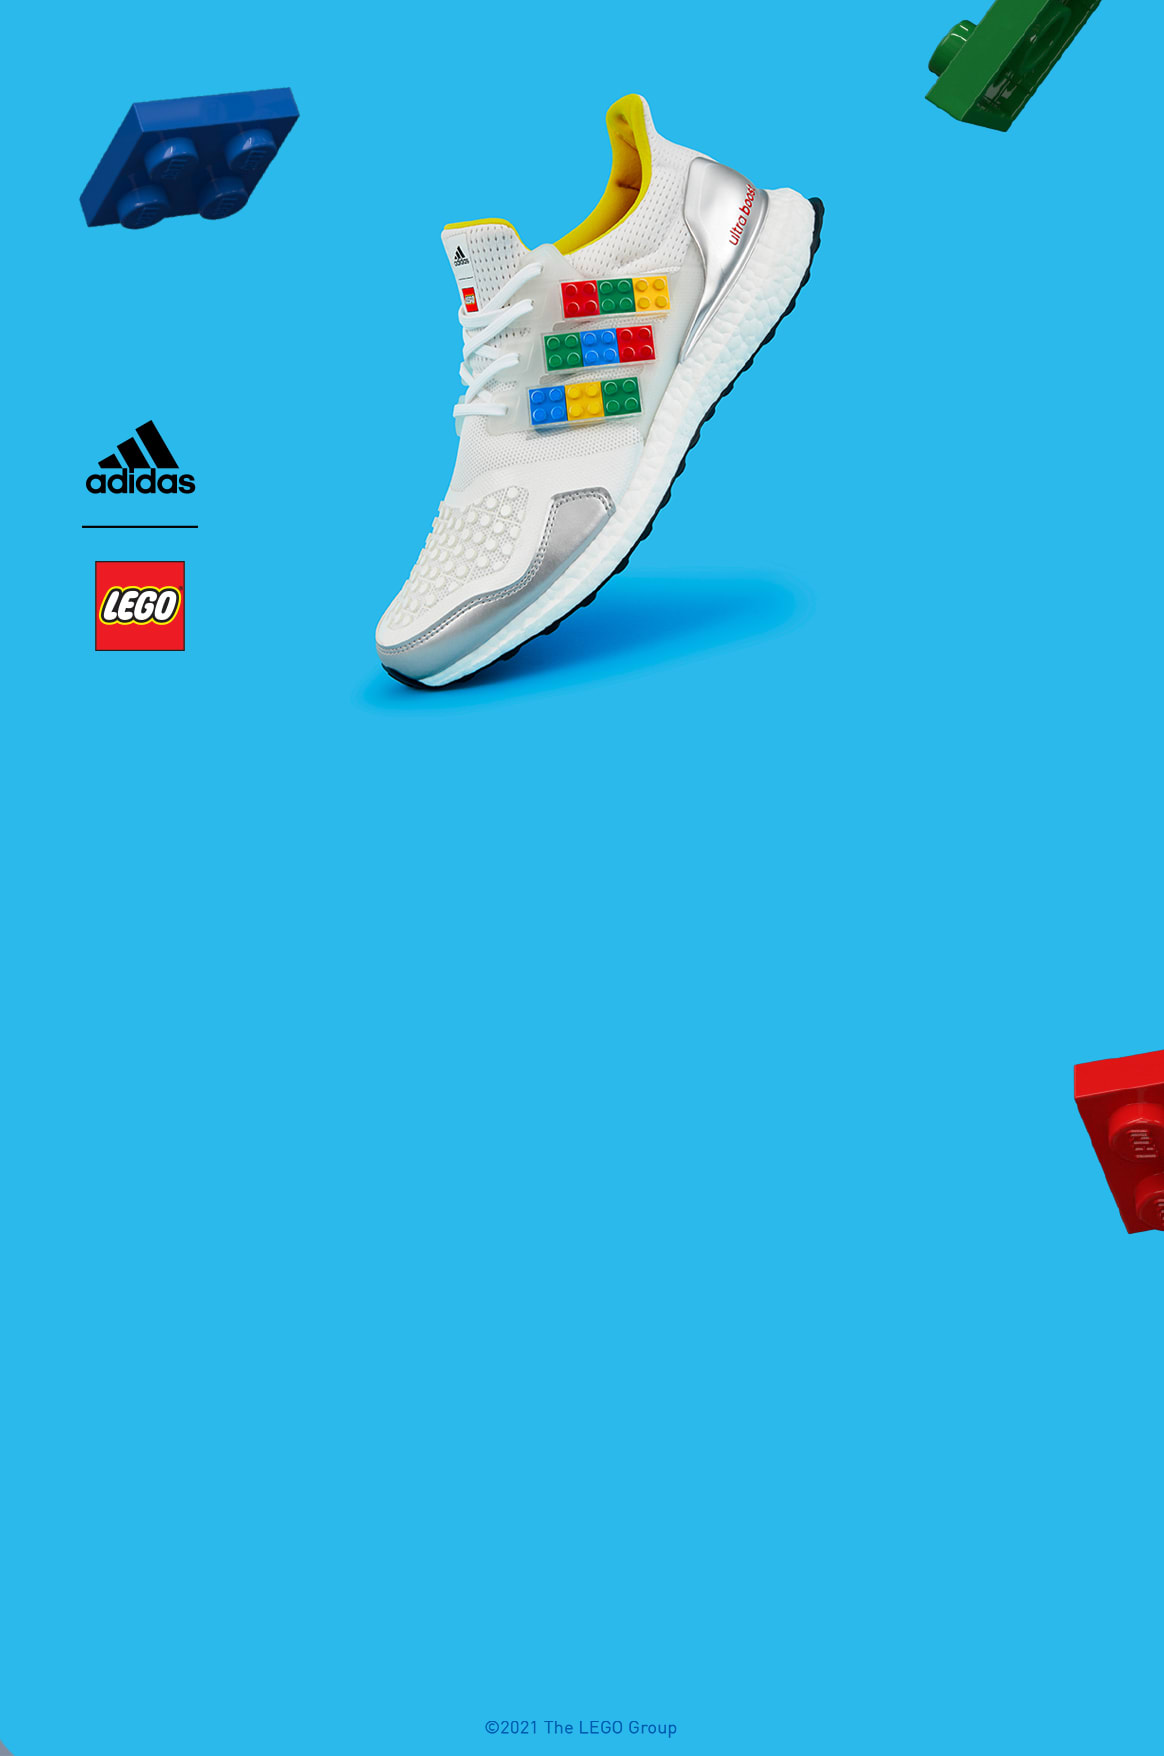 ultraboost dna plates trainers on a grey background with floating lego bricks